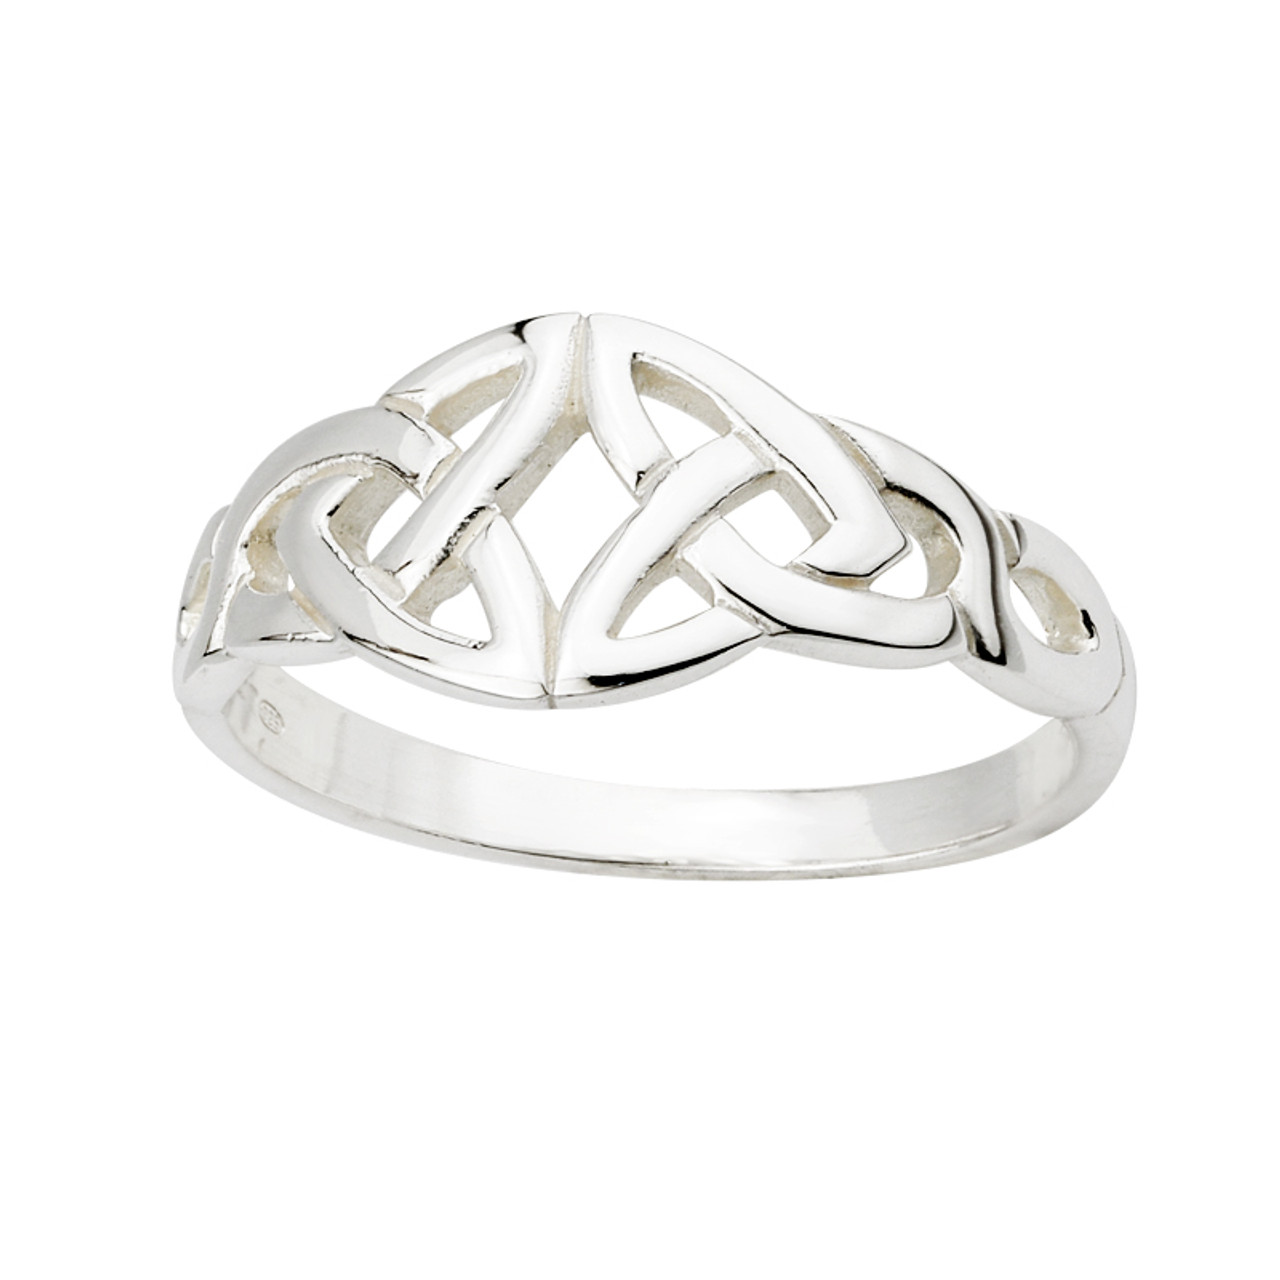 Women s Sterling Silver Celtic Knot Ring - The Twisted Shamrock 21e4f4cf2